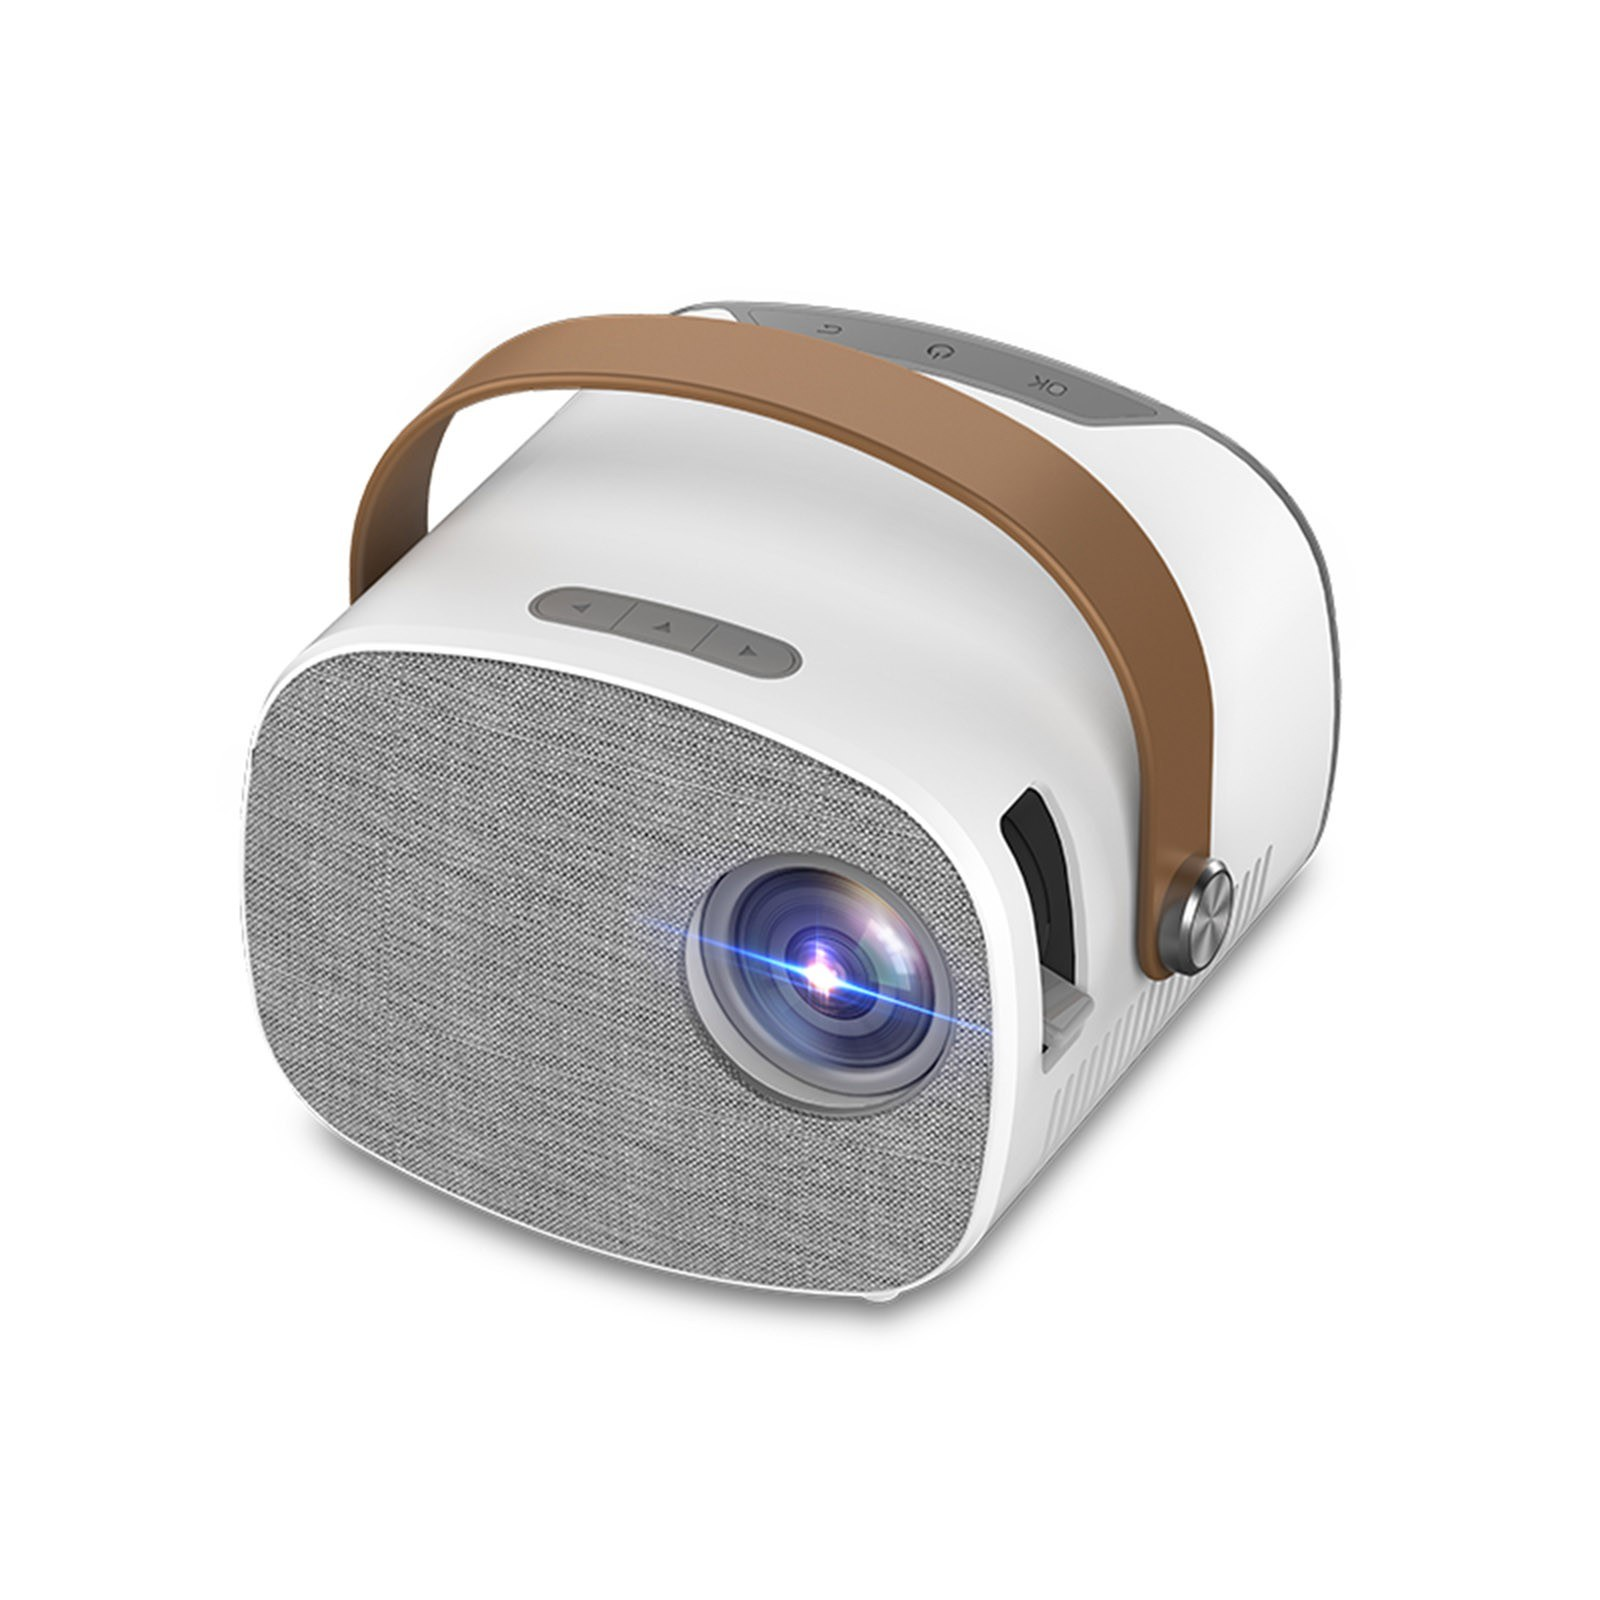 cafago.com - 32% OFF YG230 Mini Portable Projector Full HD 1080P Video Beamer Home Theater,free shipping+$66.52